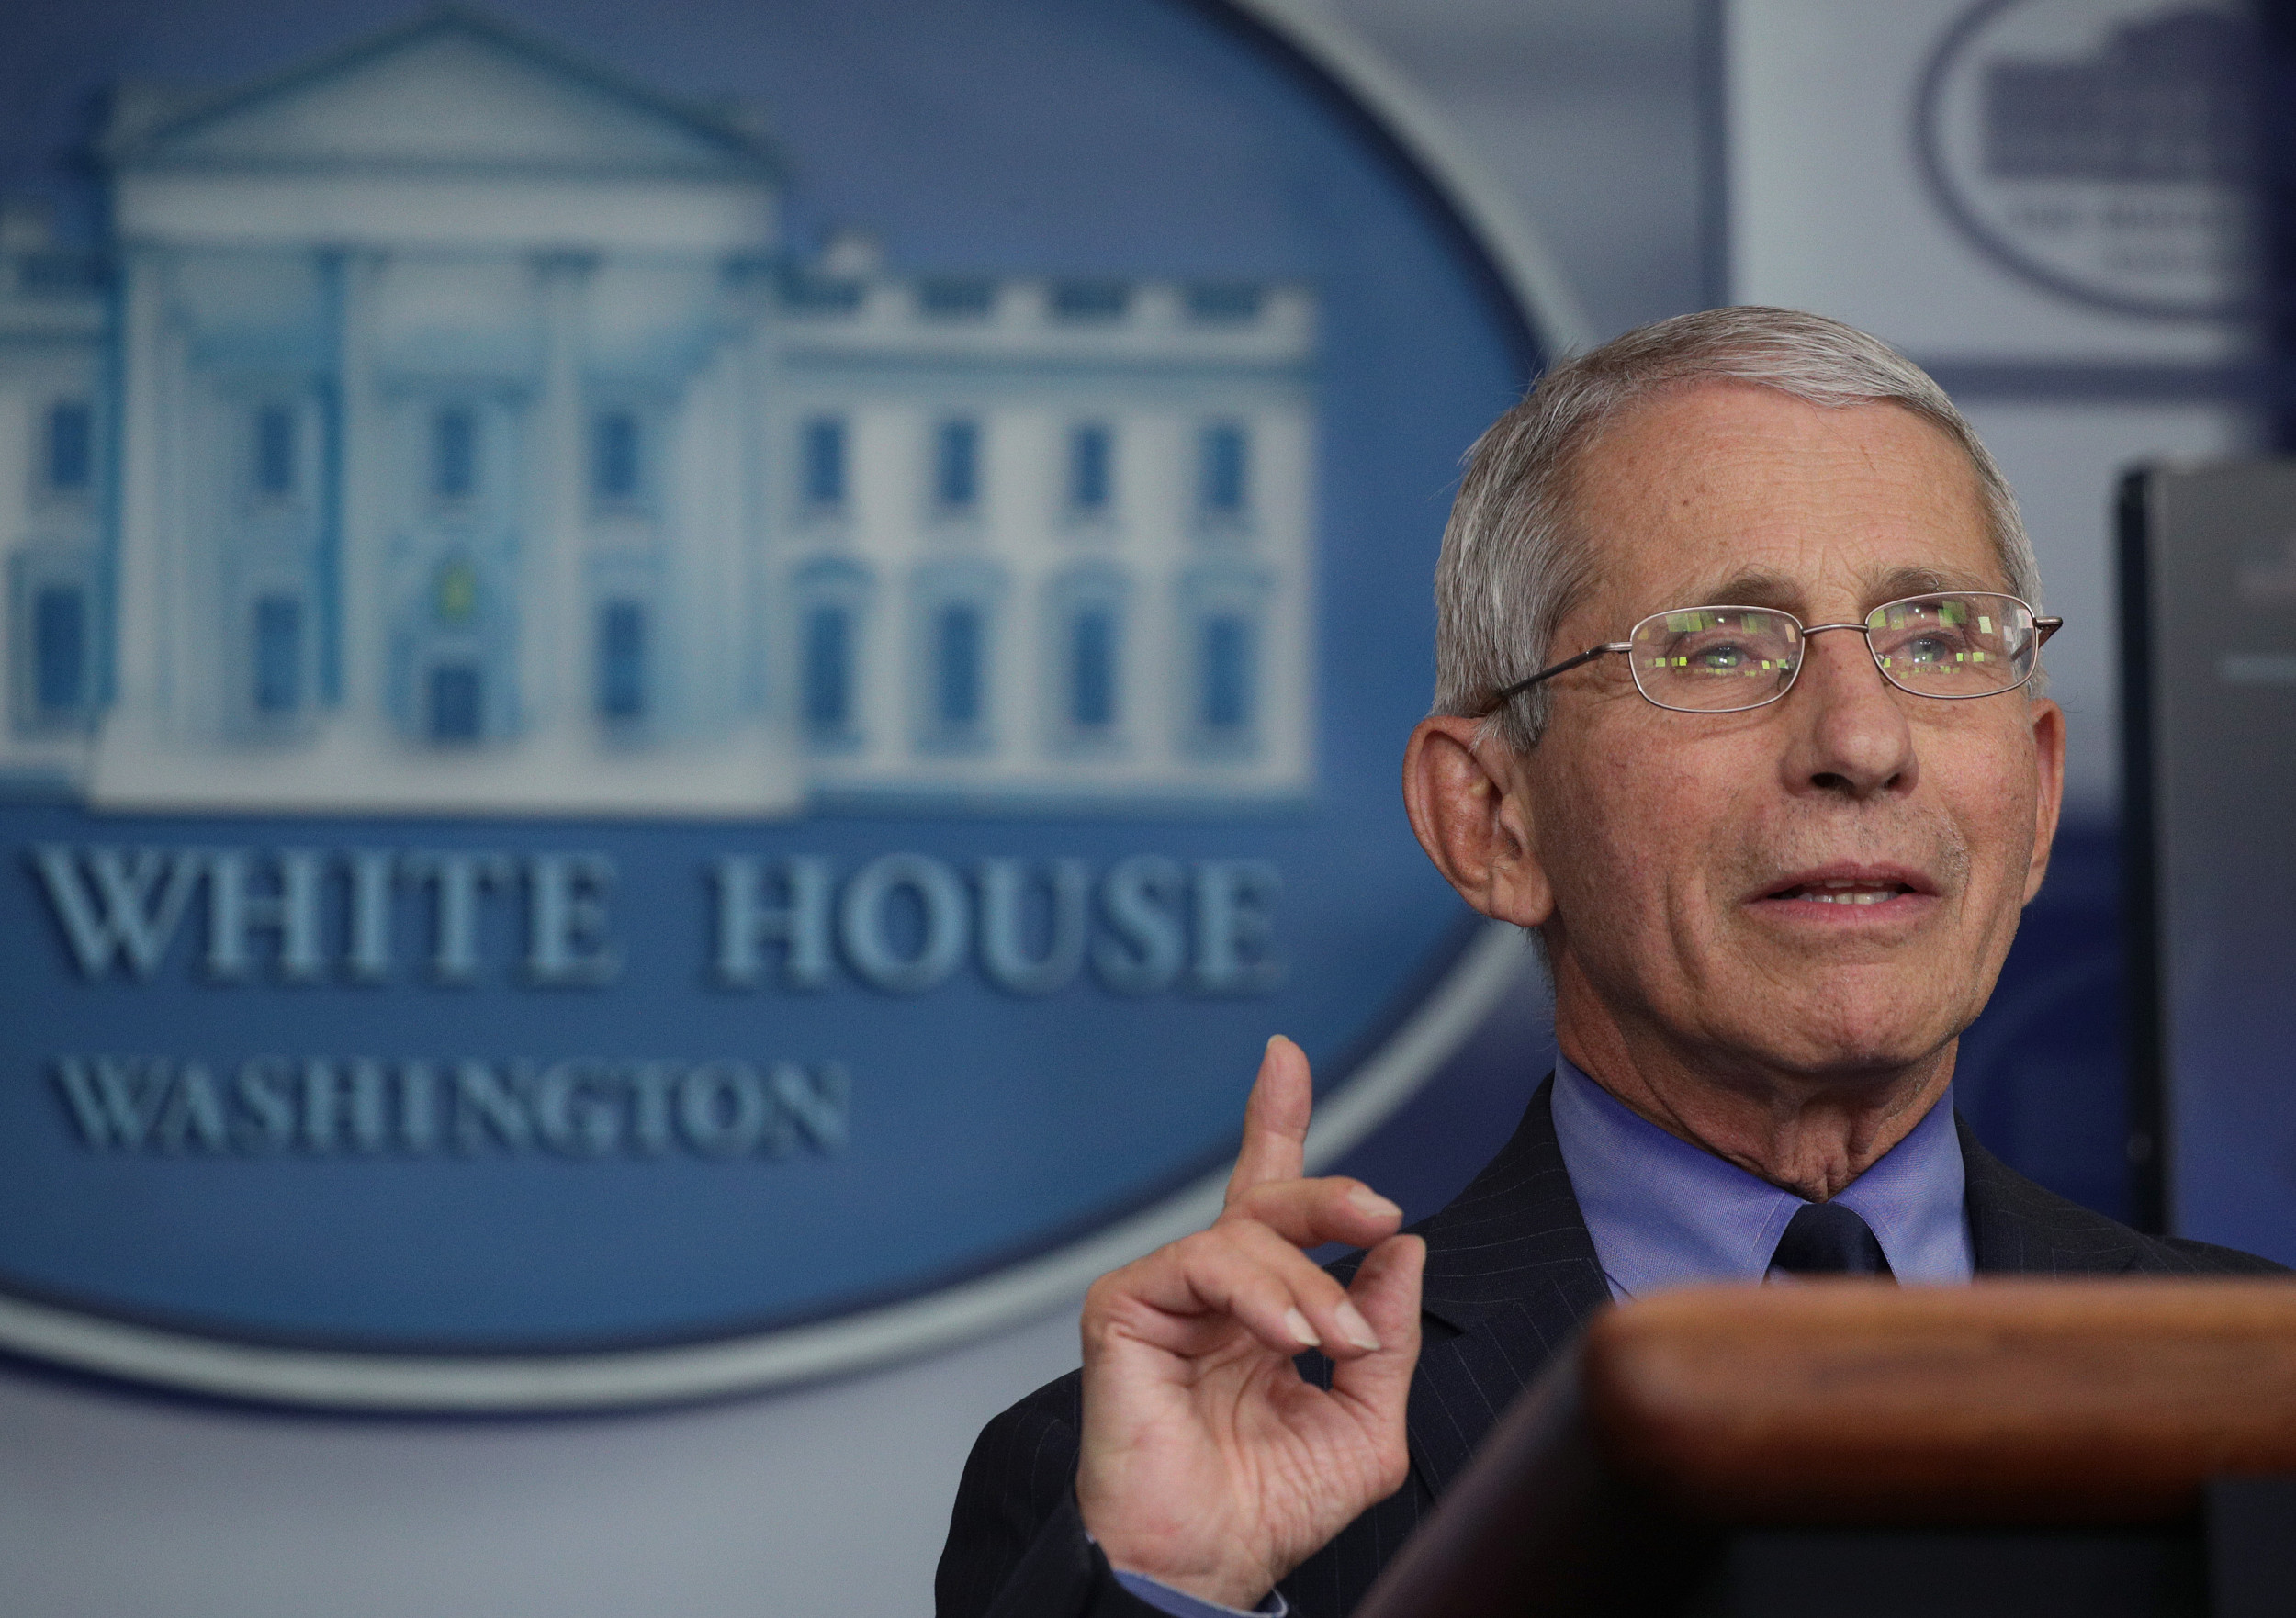 Anthony Fauci, NIH Director Collins say we'll likely need more than one coronavirus vaccine to end pandemic